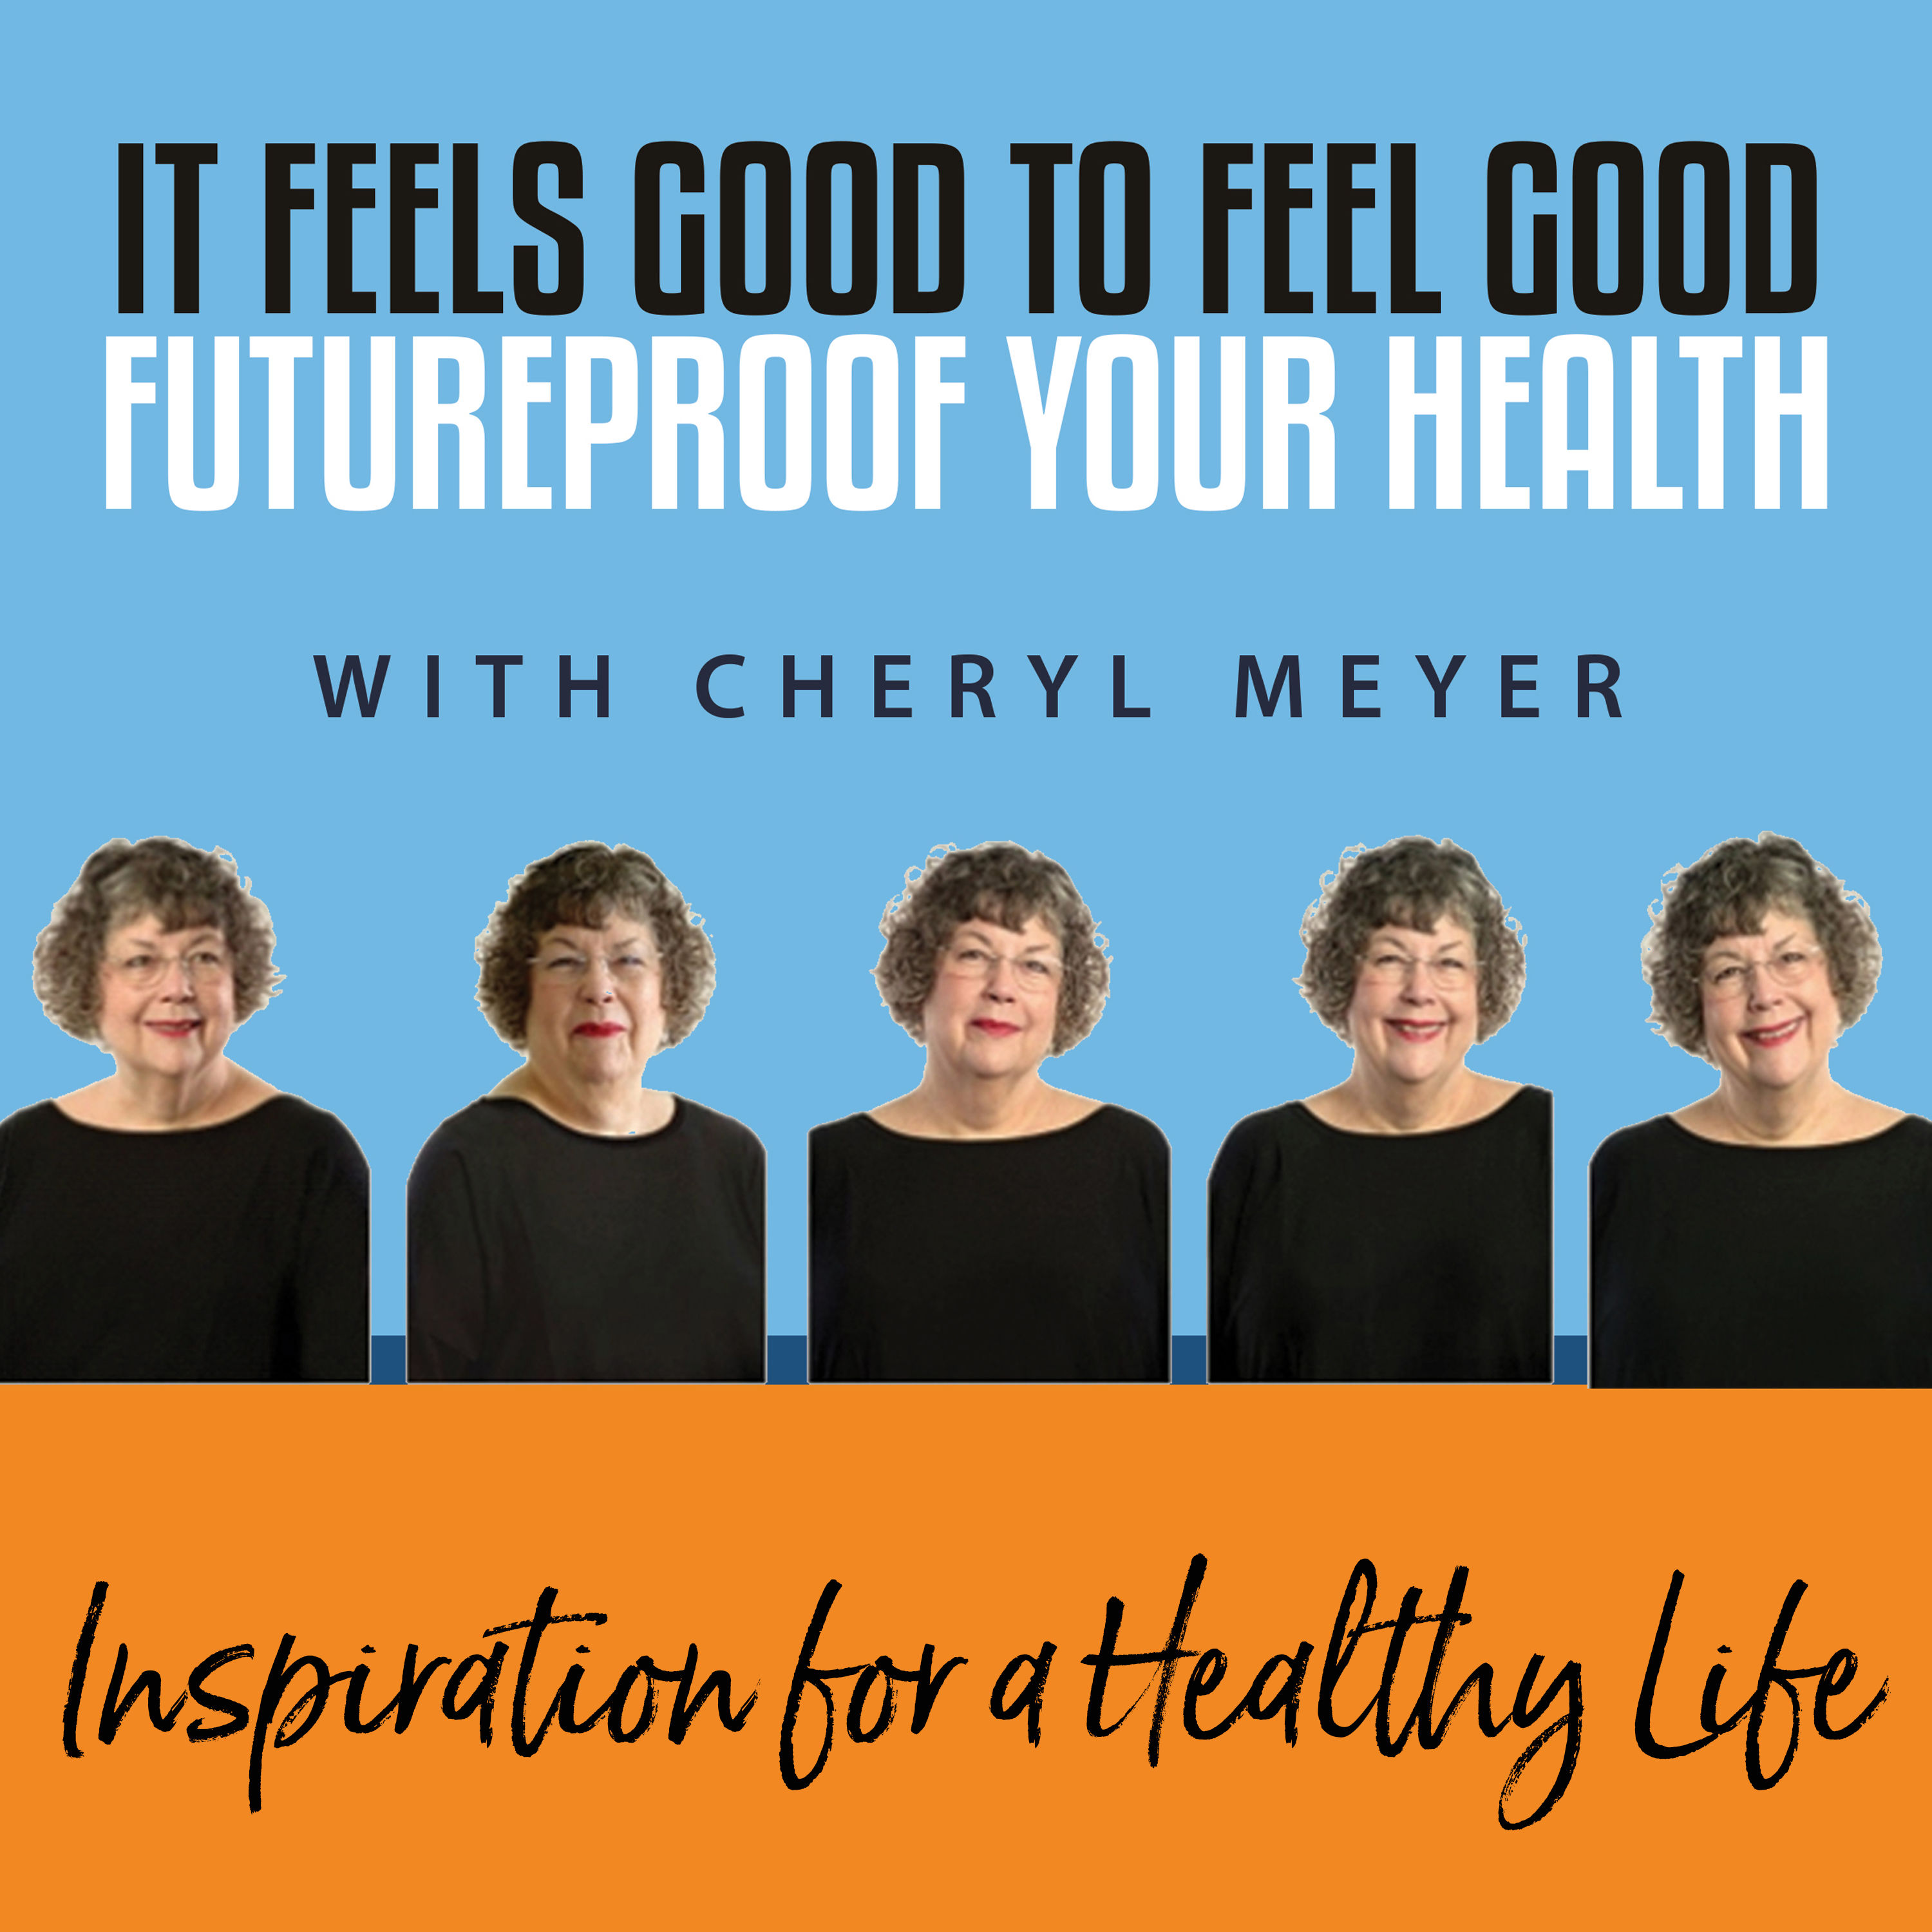 It Feels Good to Feel Good - Futureproof Your Health Image